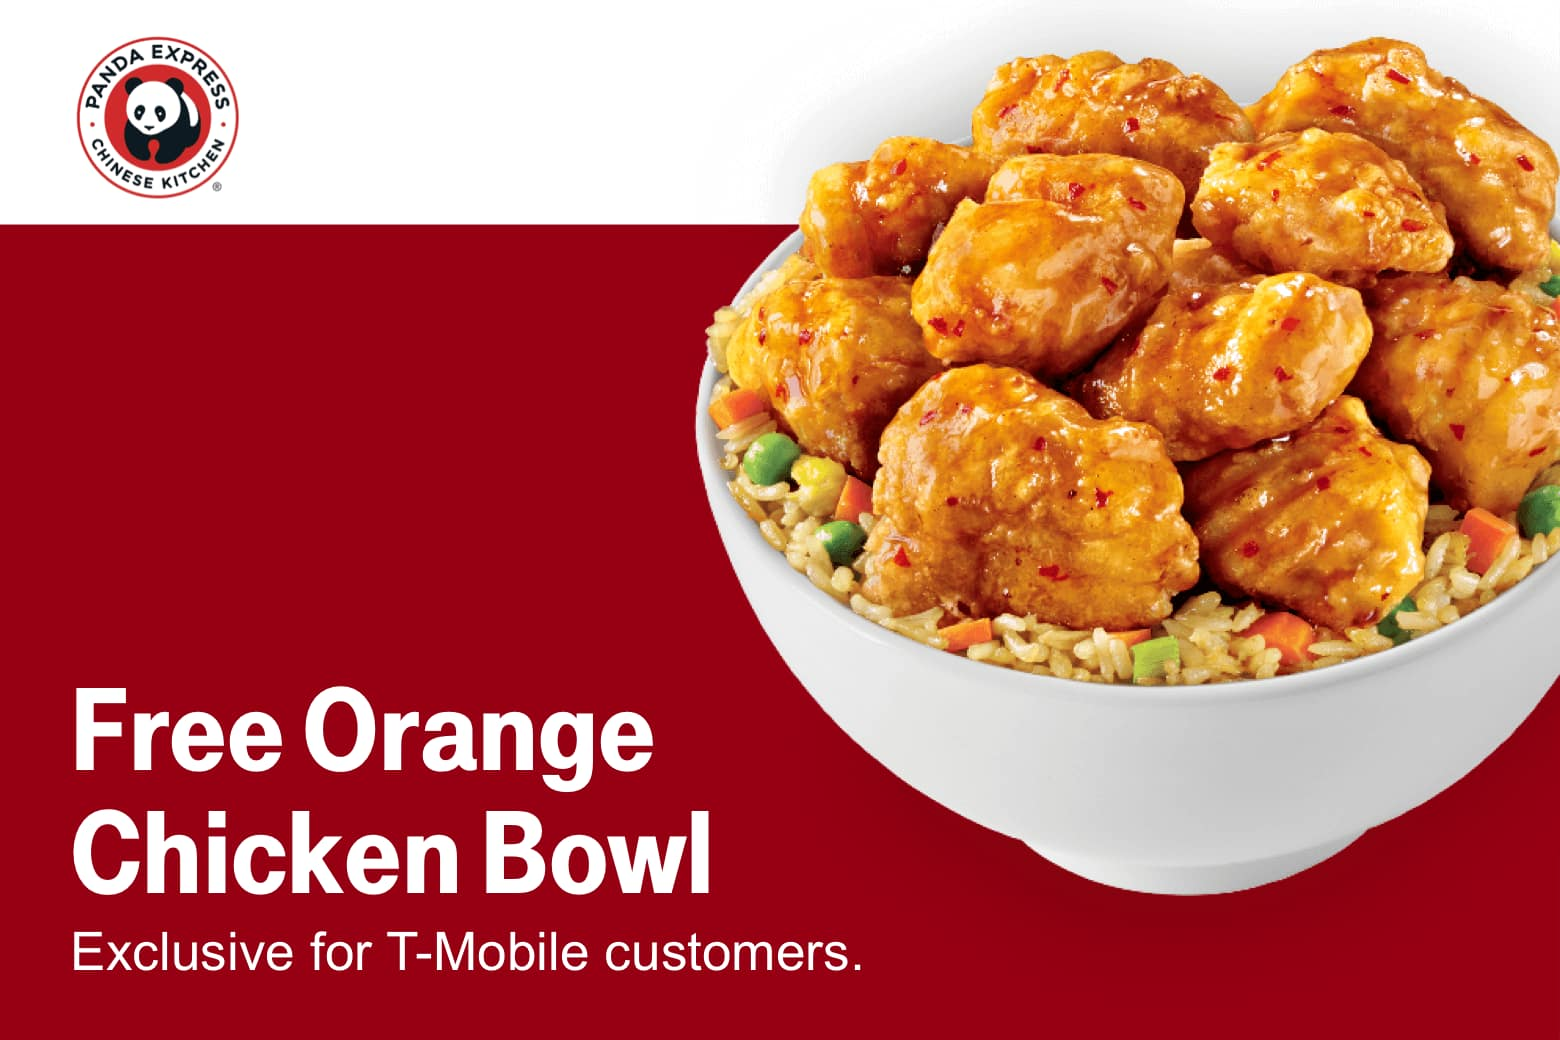 photograph relating to Panda Express Printable Coupons referred to as T-Cell Potential buyers 07/09: Free of charge Orange Fowl Panda Specific